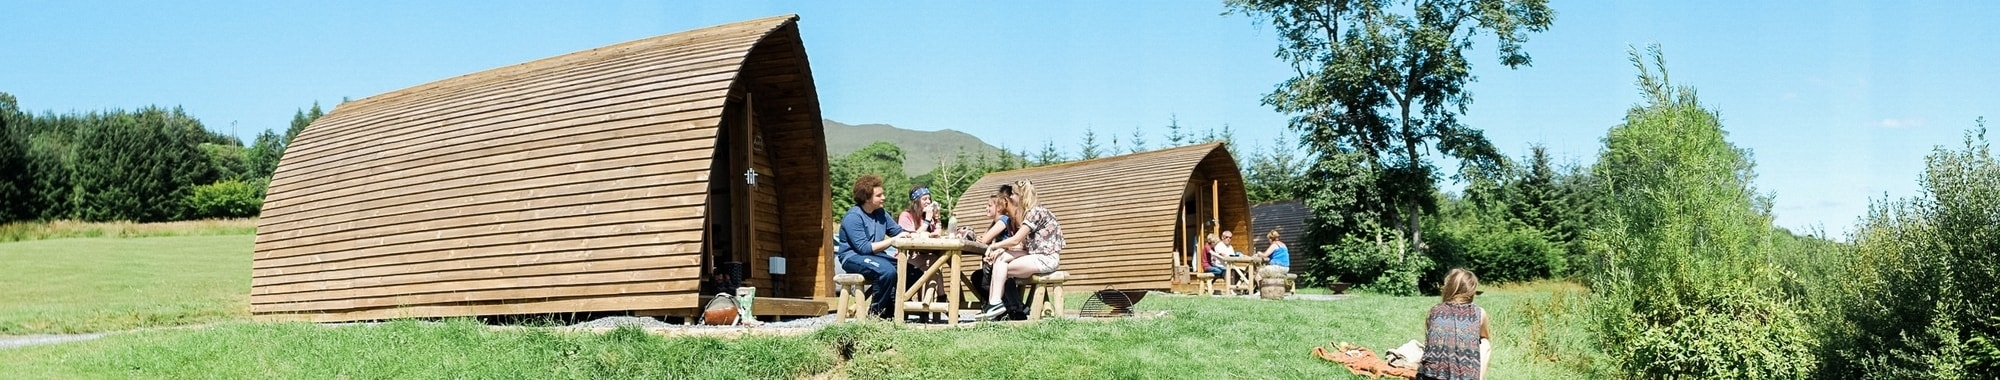 Camping made comfy with heated wooden Wigwam Cabins